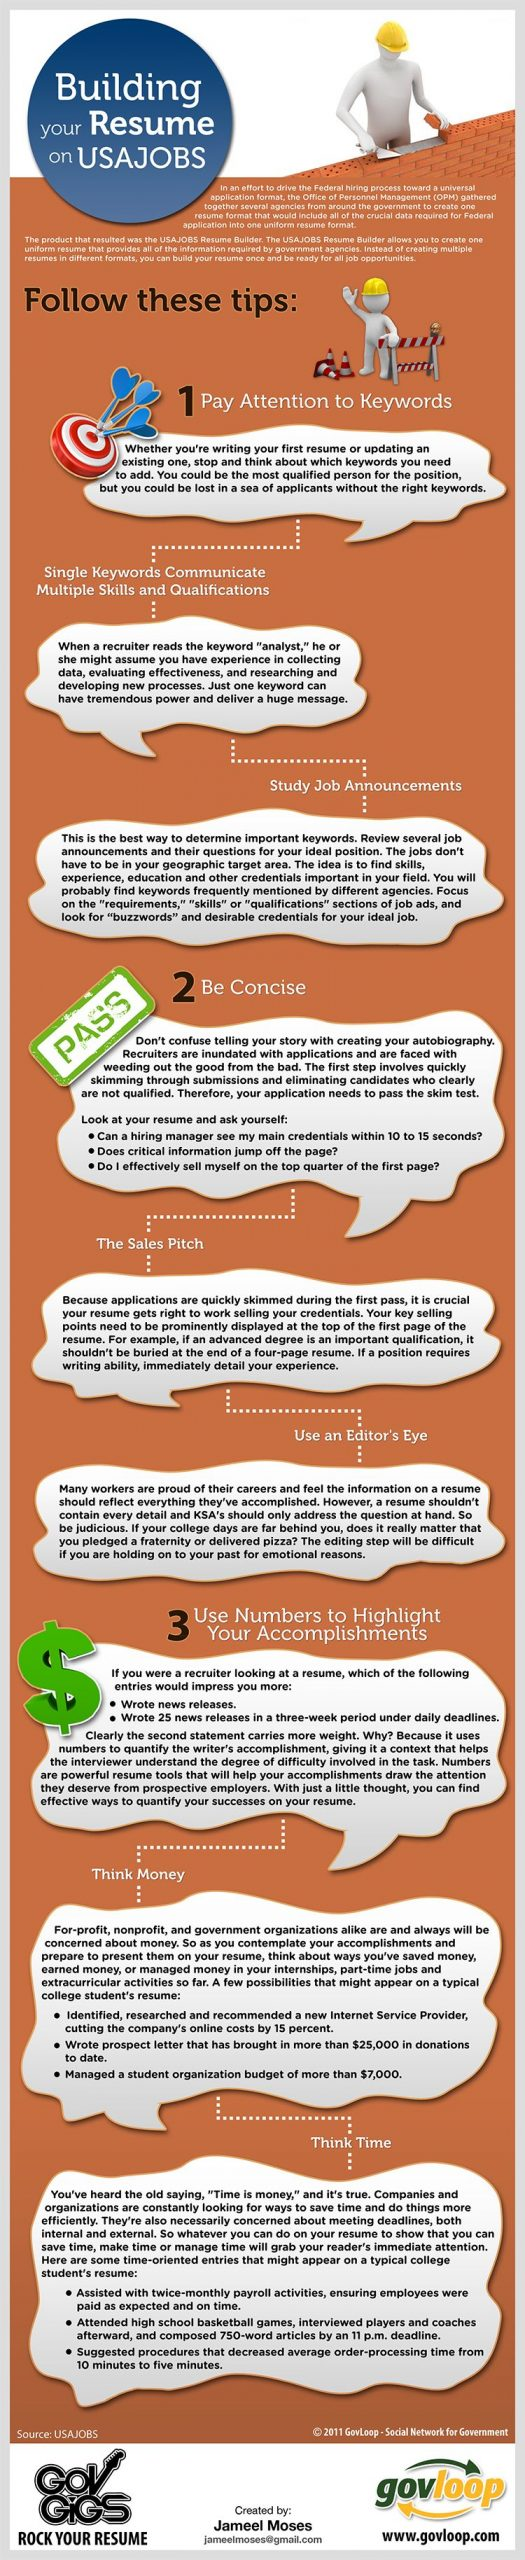 Rock Your Resume USAJOBS Style Infograph to help job seekers build their USAJOBS resume EFFECTIVELY